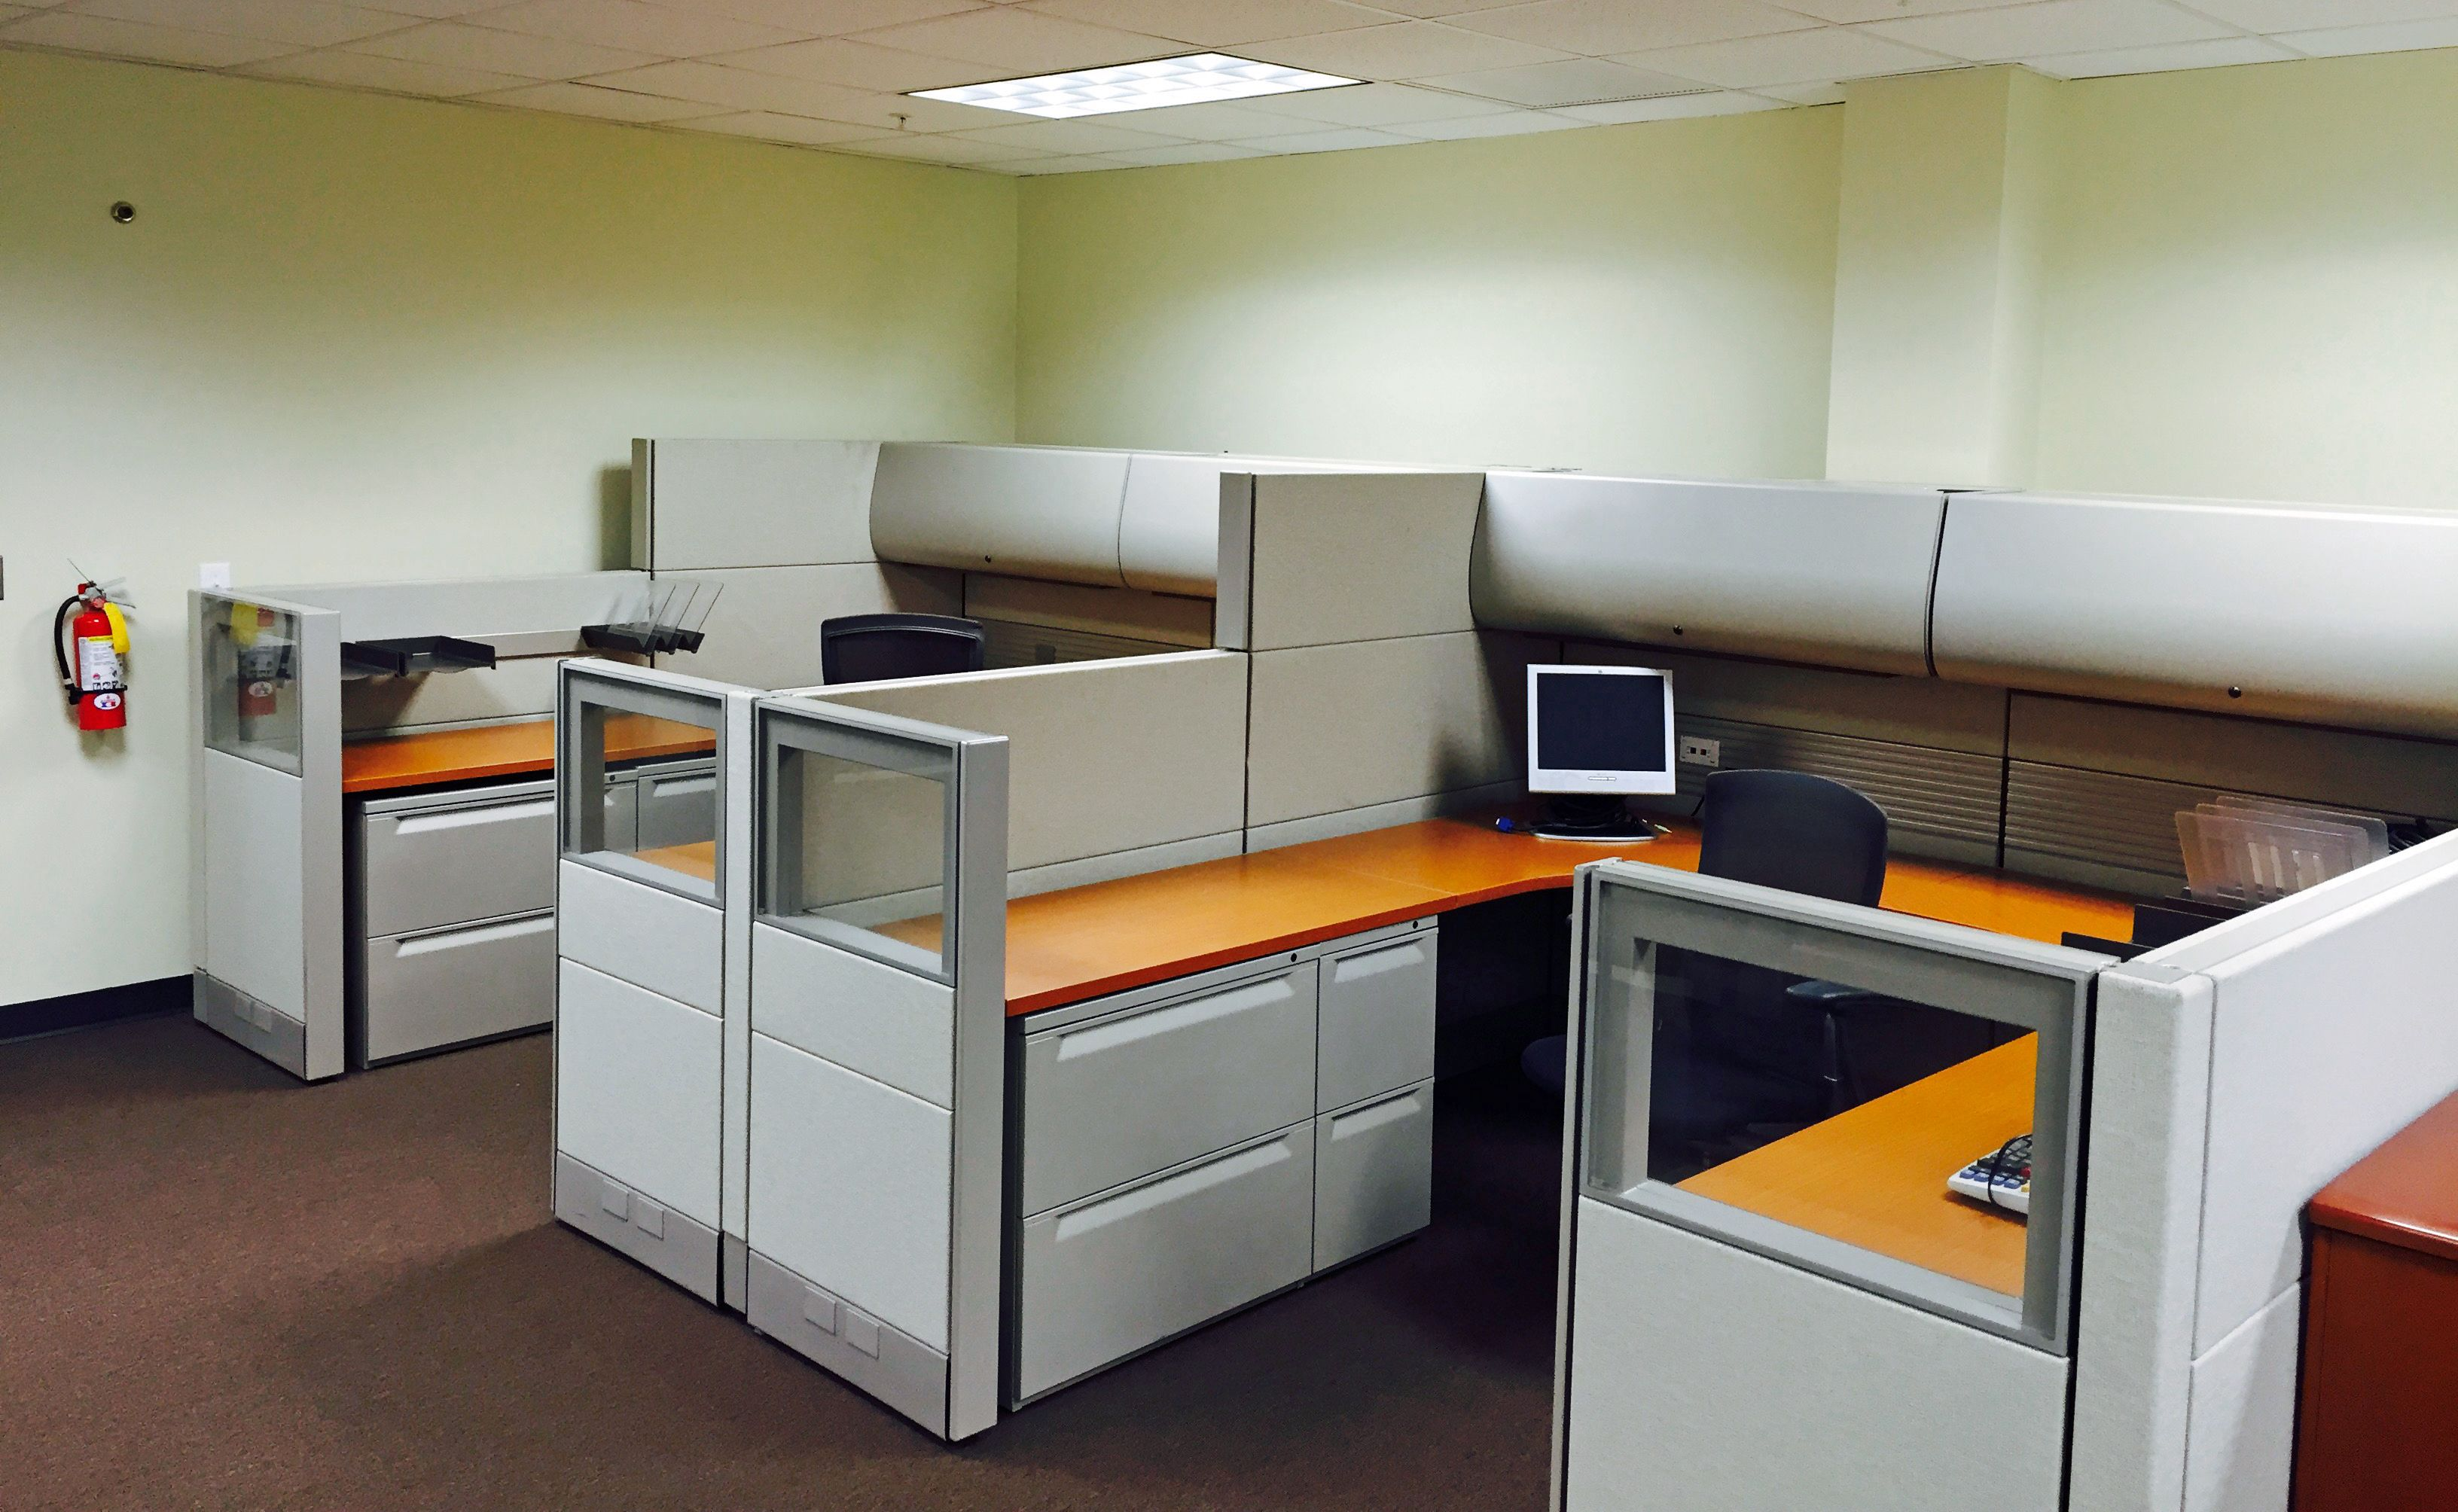 Herman Miller Ethospace 8x8 U Shape Contemporary Design Cubicle Sitting  Side By Side Loaded, $1995 For 2 Stations